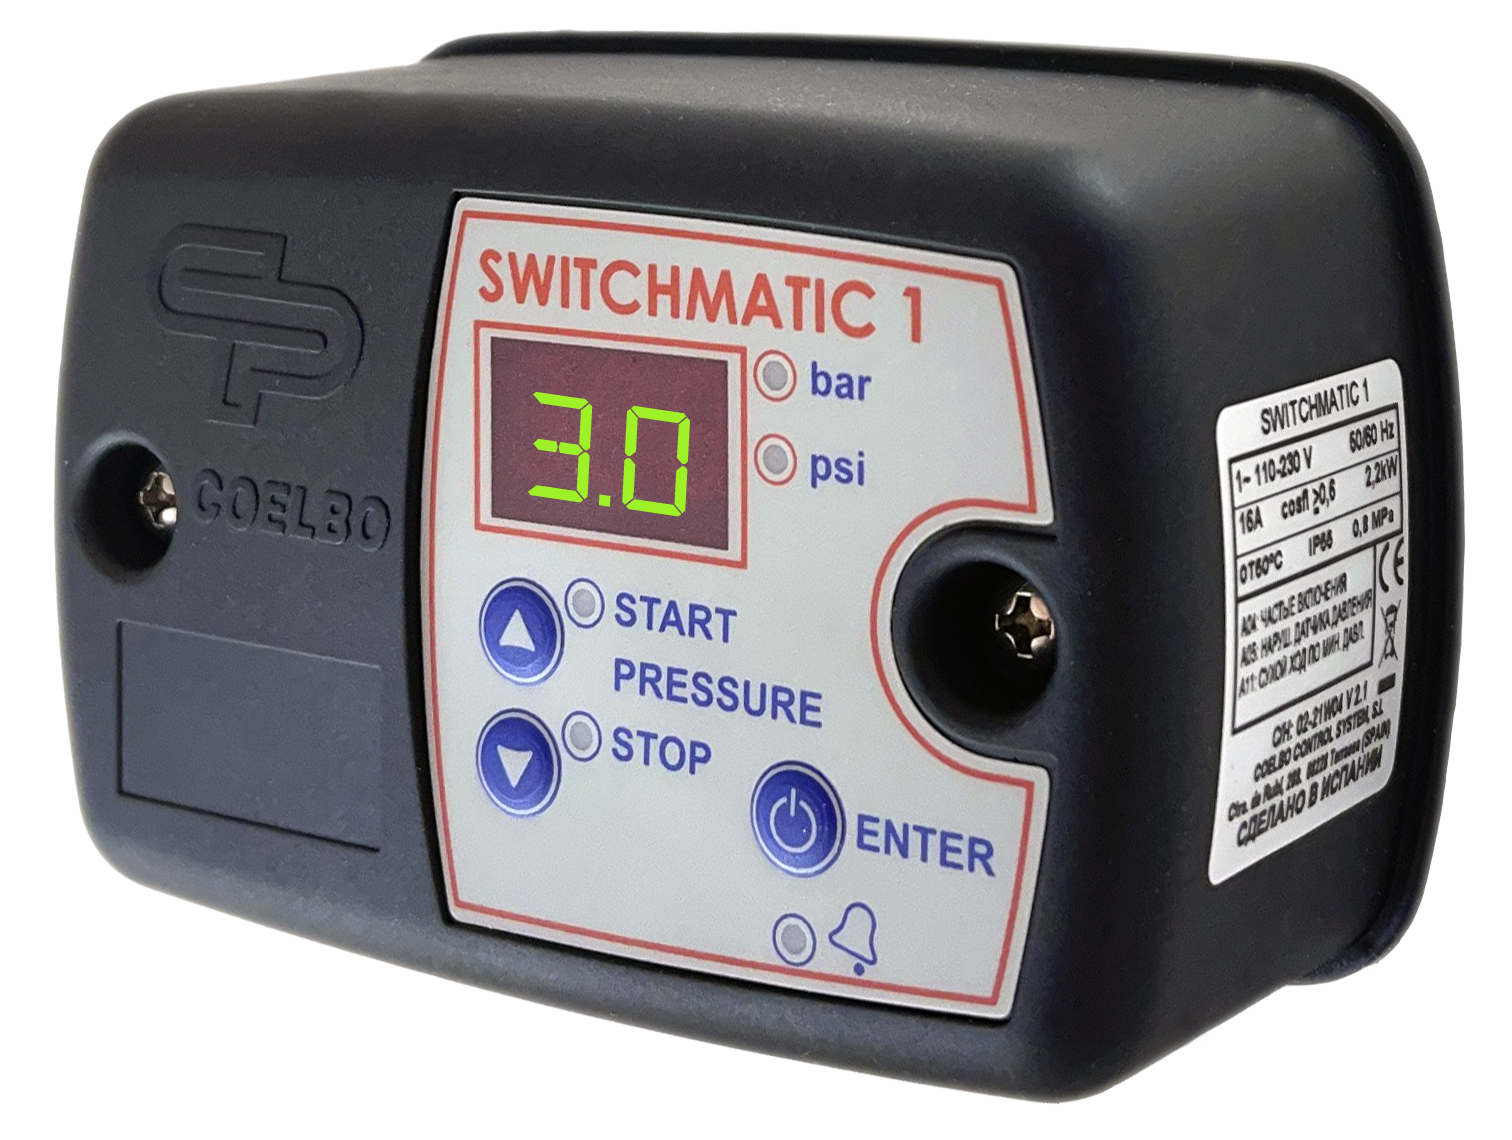 SWITCHMATIC 1